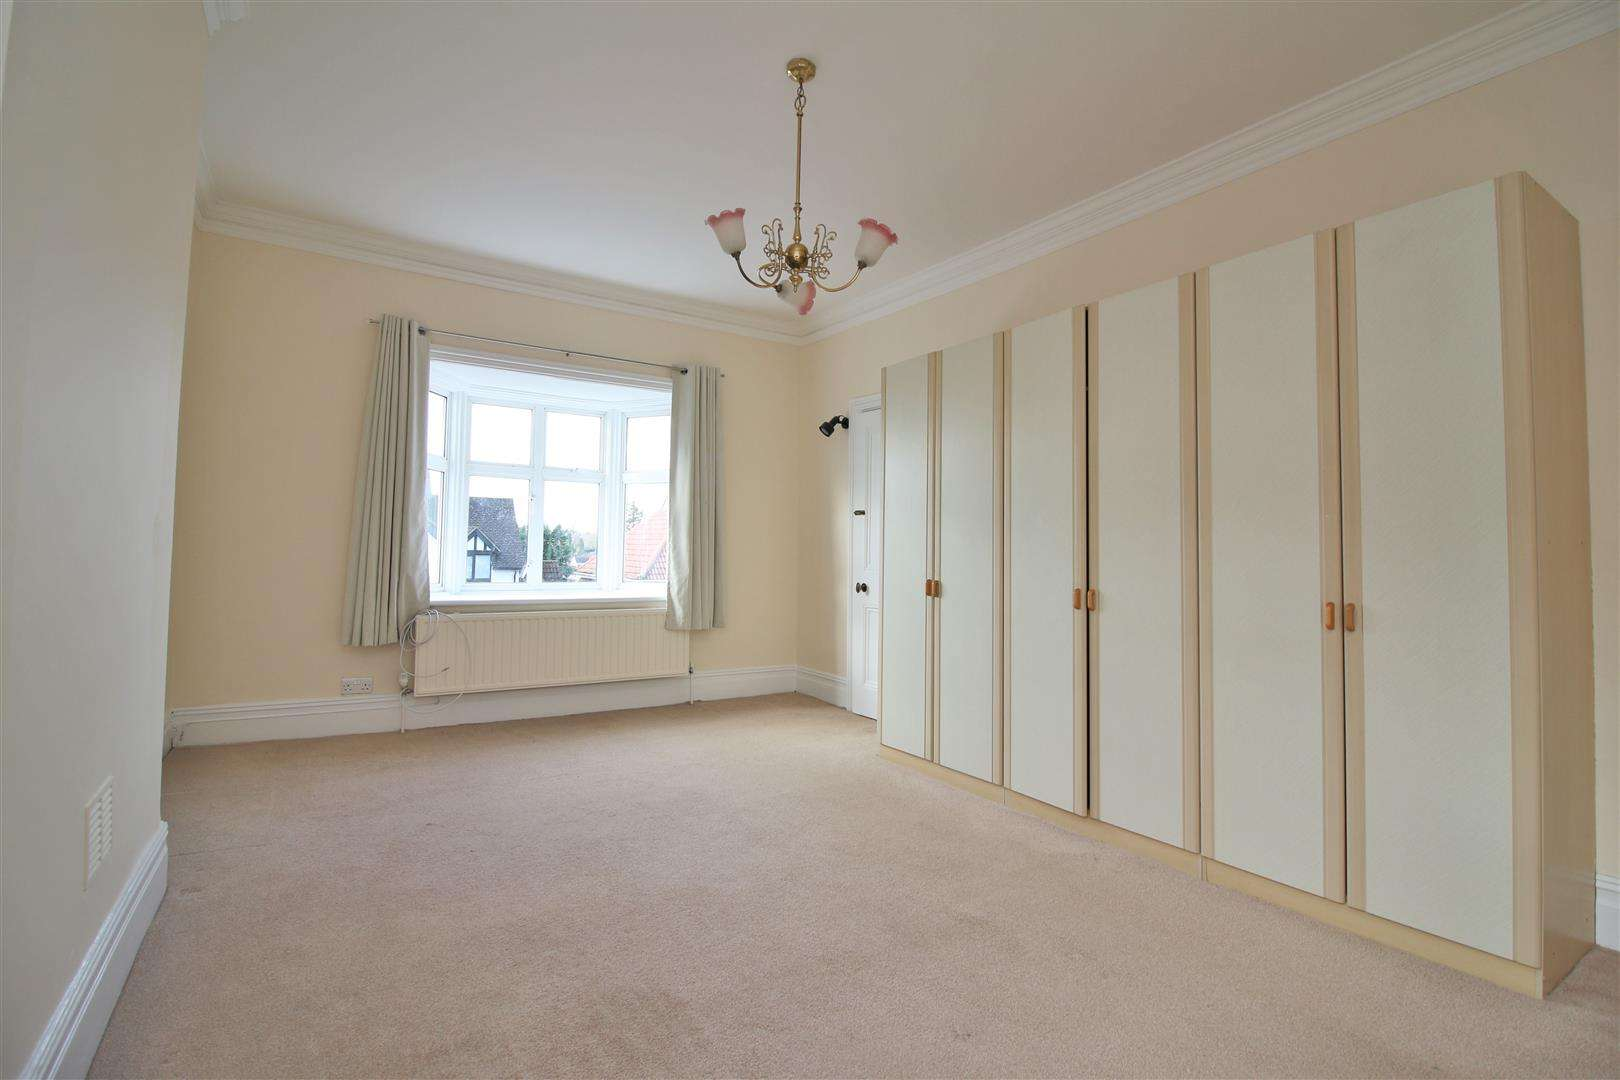 5 bed to rent - (Property Image 11)